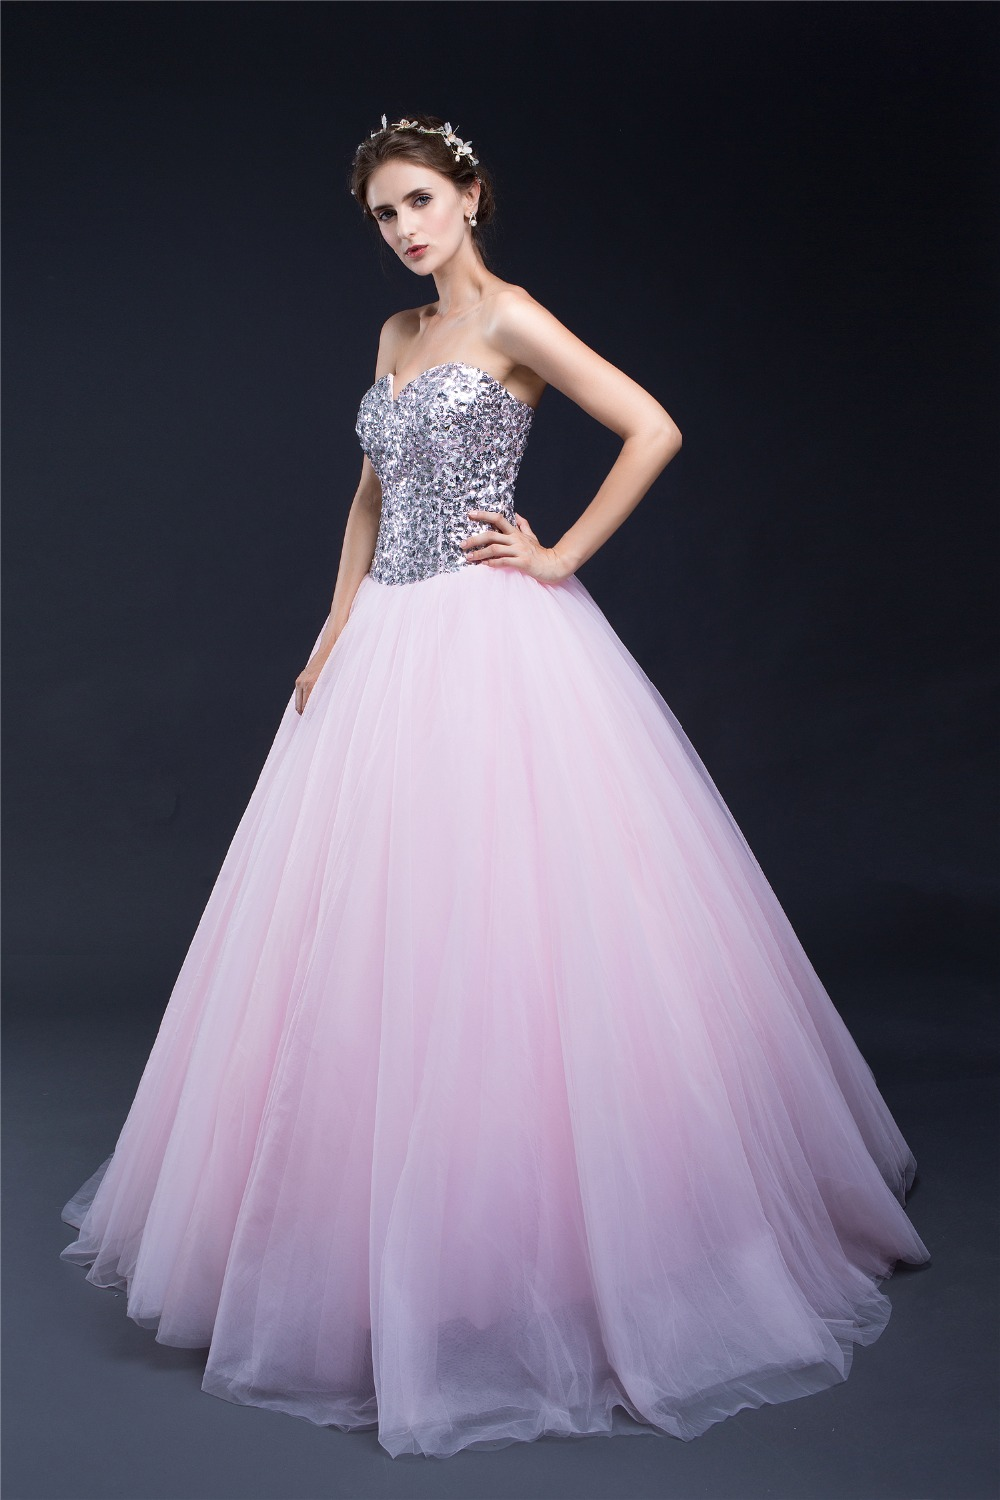 VanMe Women Pink Prom Ball Gown Dresses 2017 Stones And Sequins ...